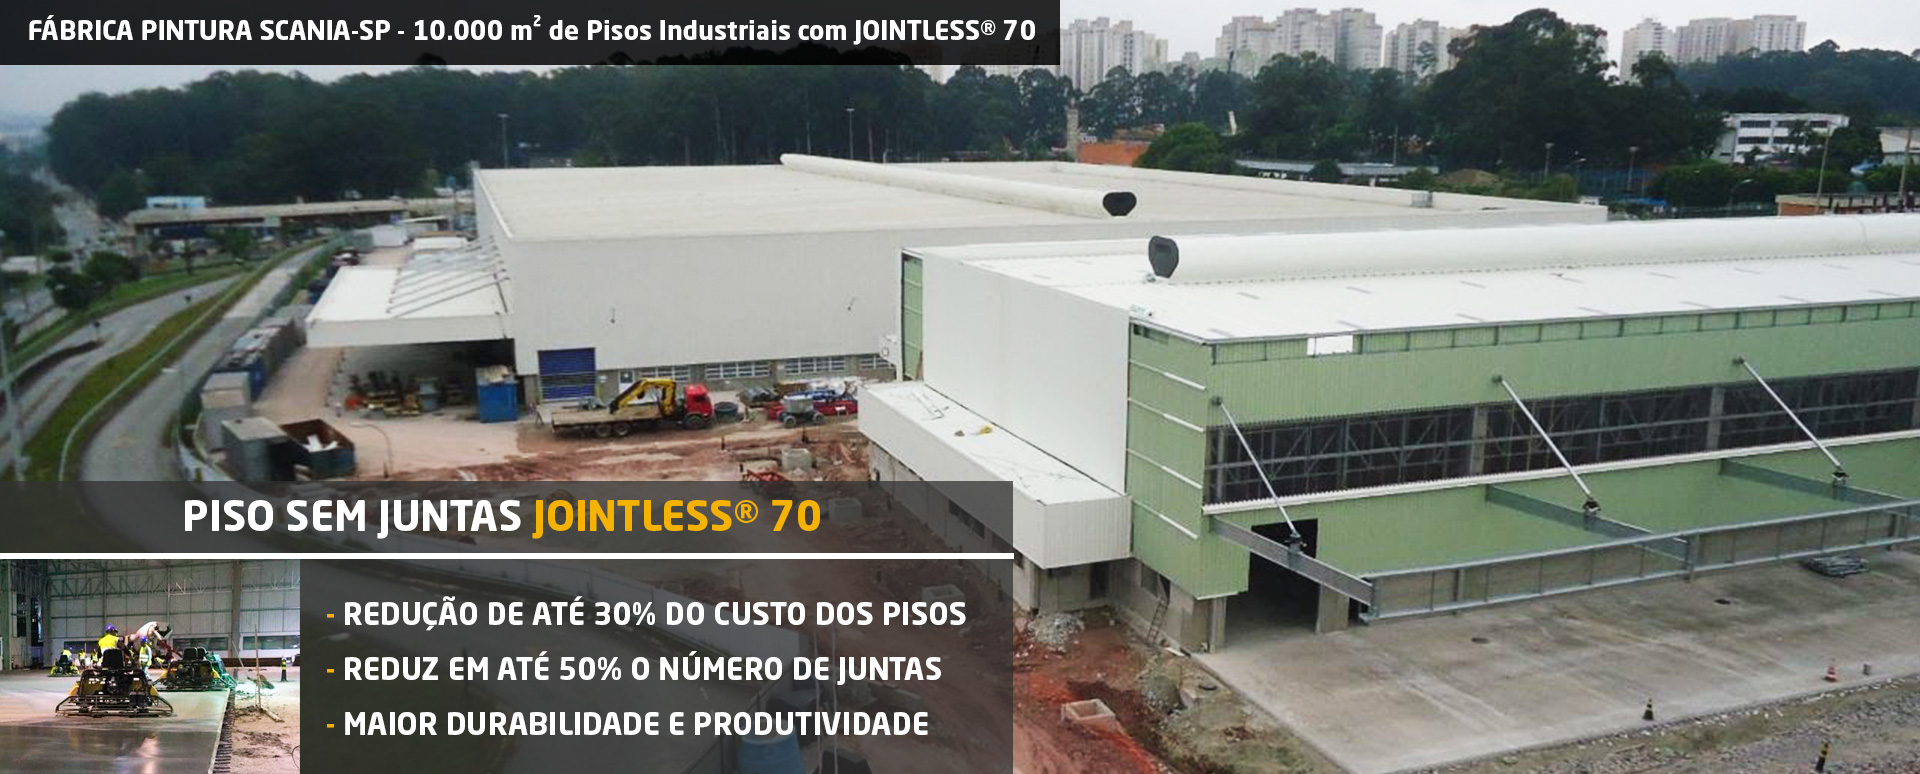 Piso sem Juntas JOINTLESS 70